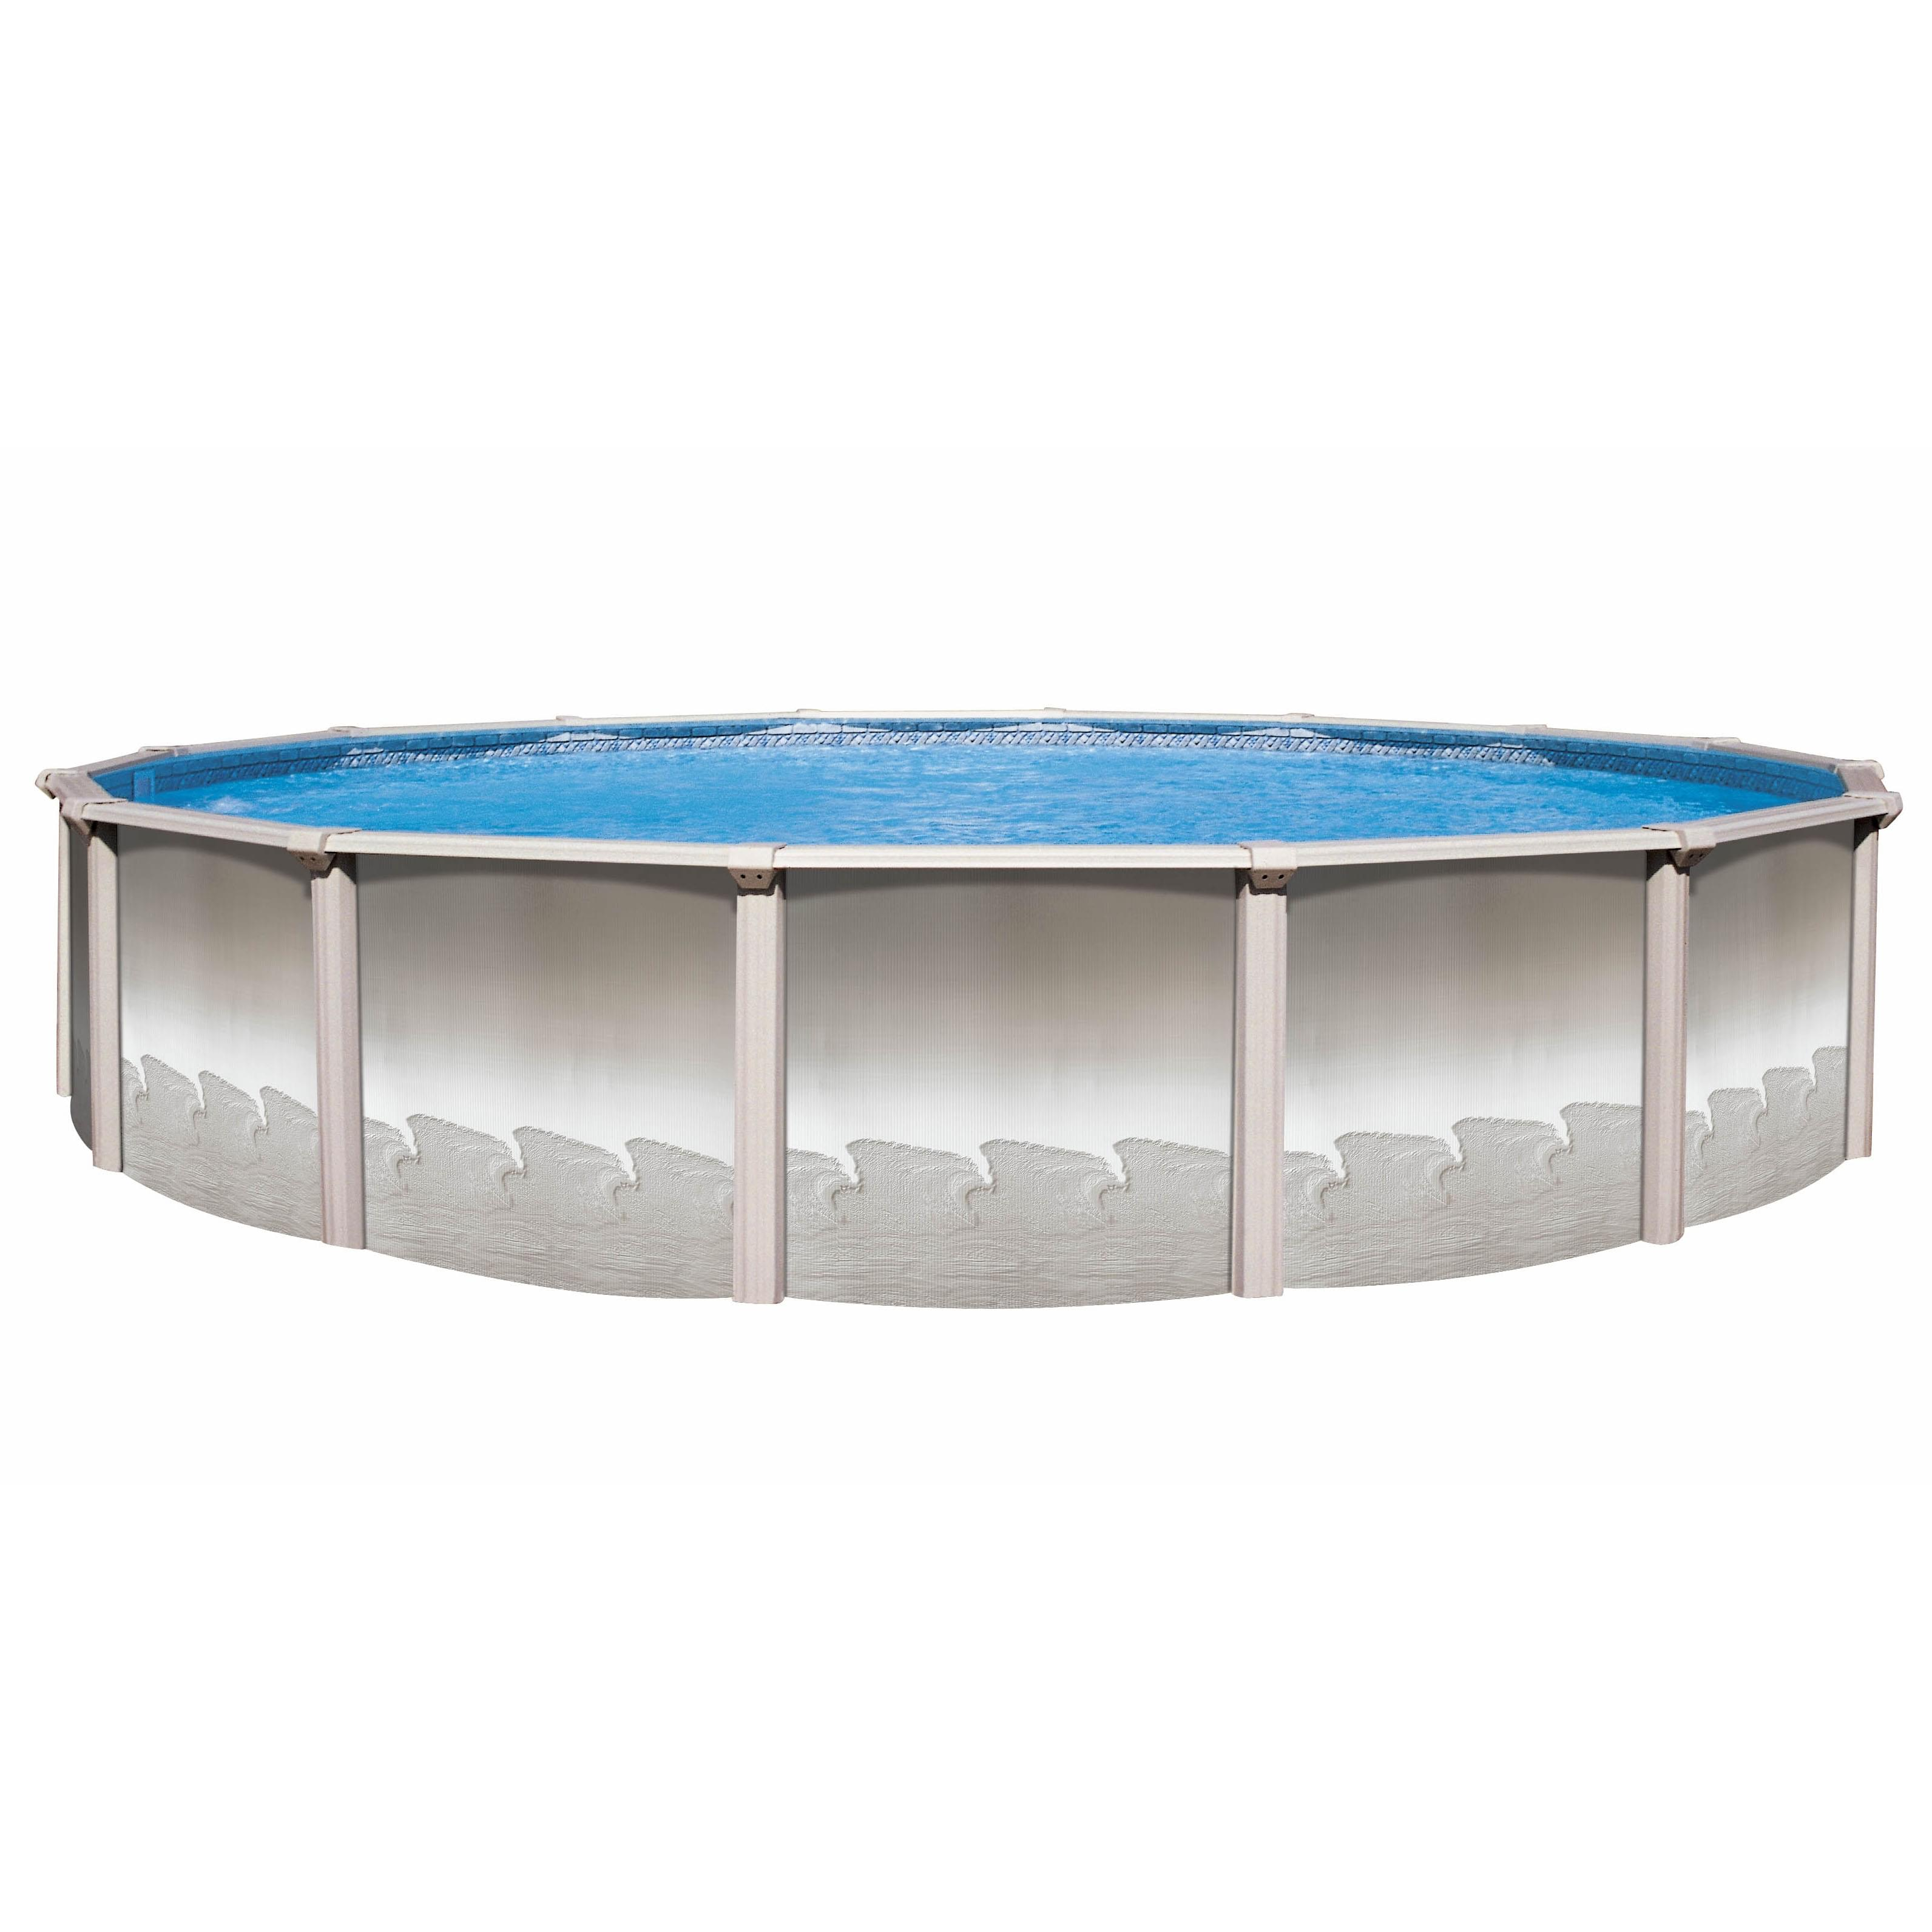 12 Ft Round Imperial Above Ground Pool With 52 Inch Chateau Wall Pool Supplies Canada